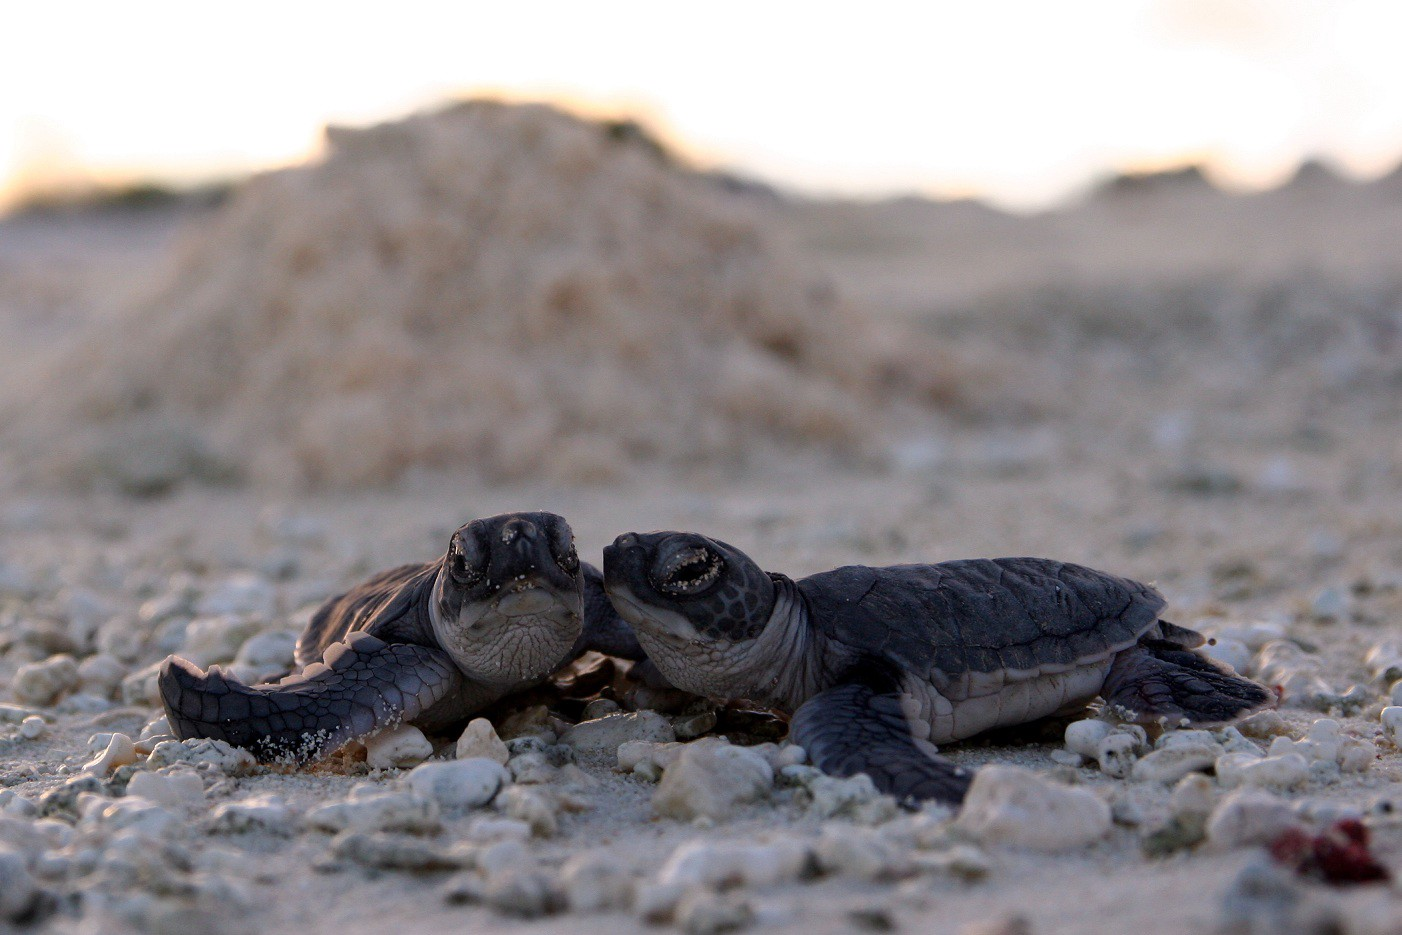 protecting sea turtles: coast to coast – u.s. fish & wildlife